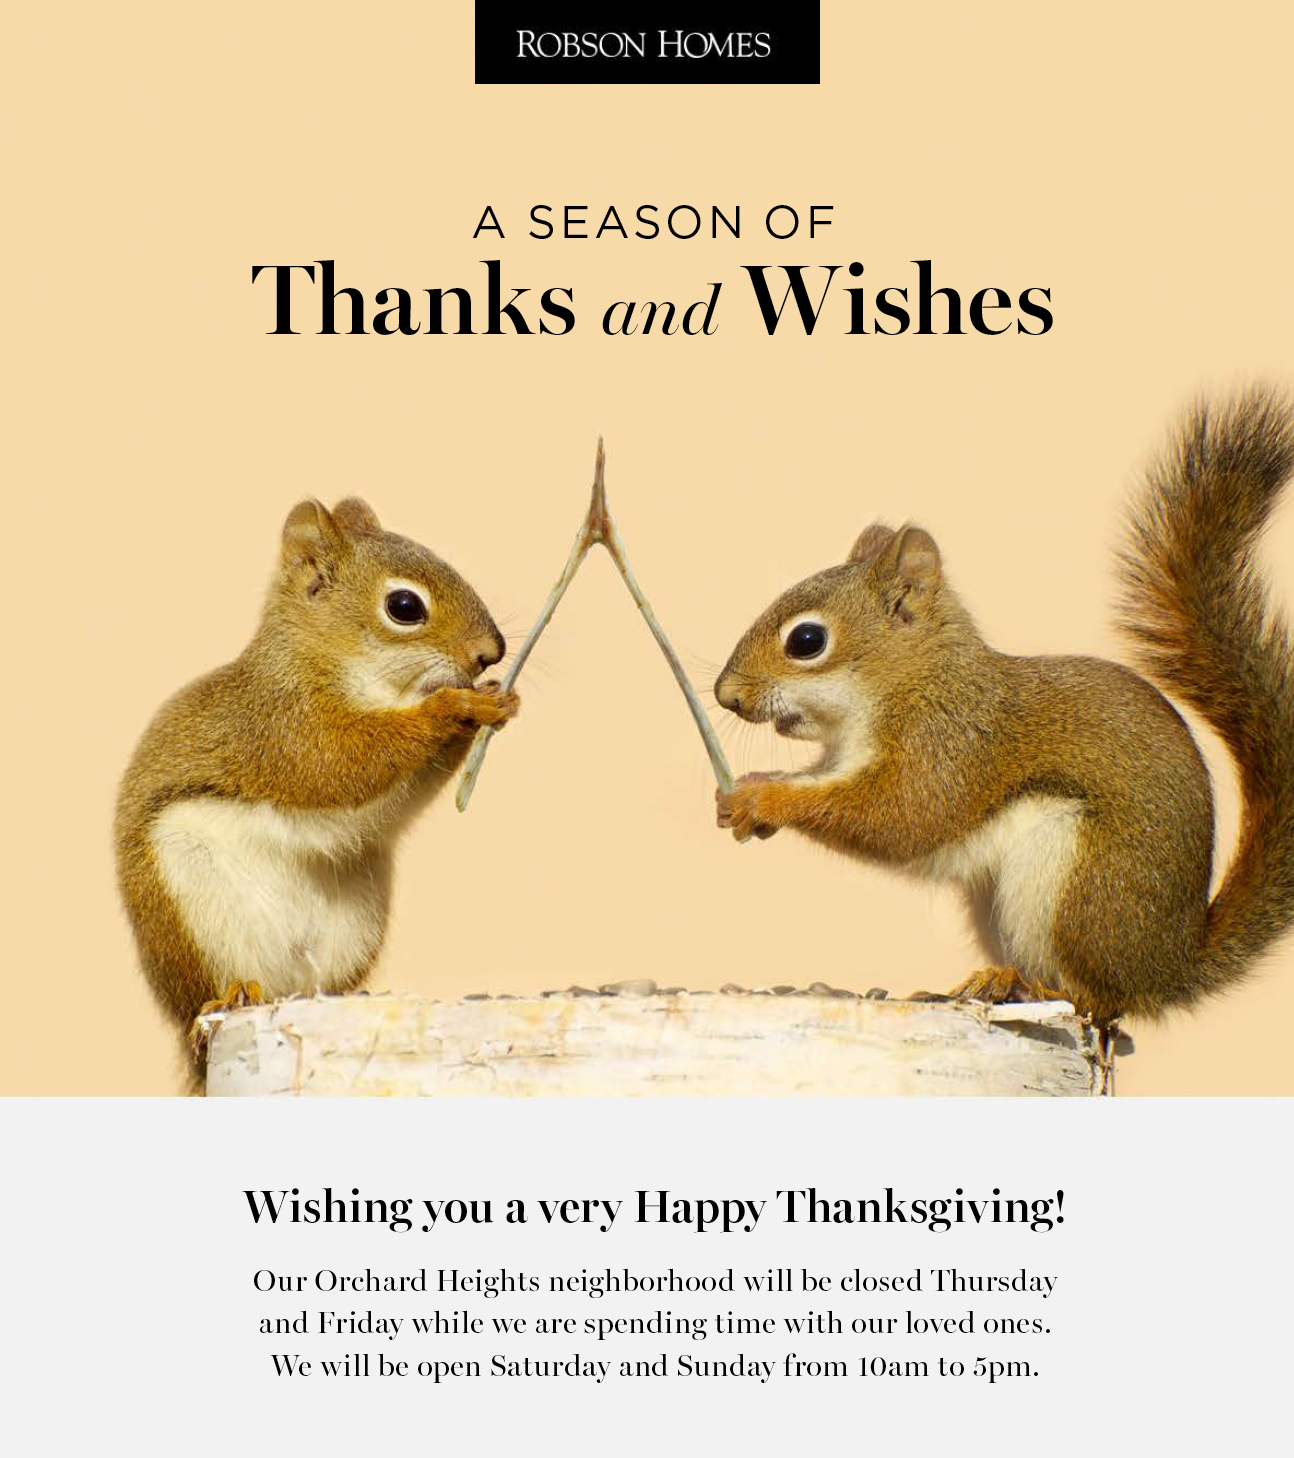 Robson Homes Thanksgiving Email 2020